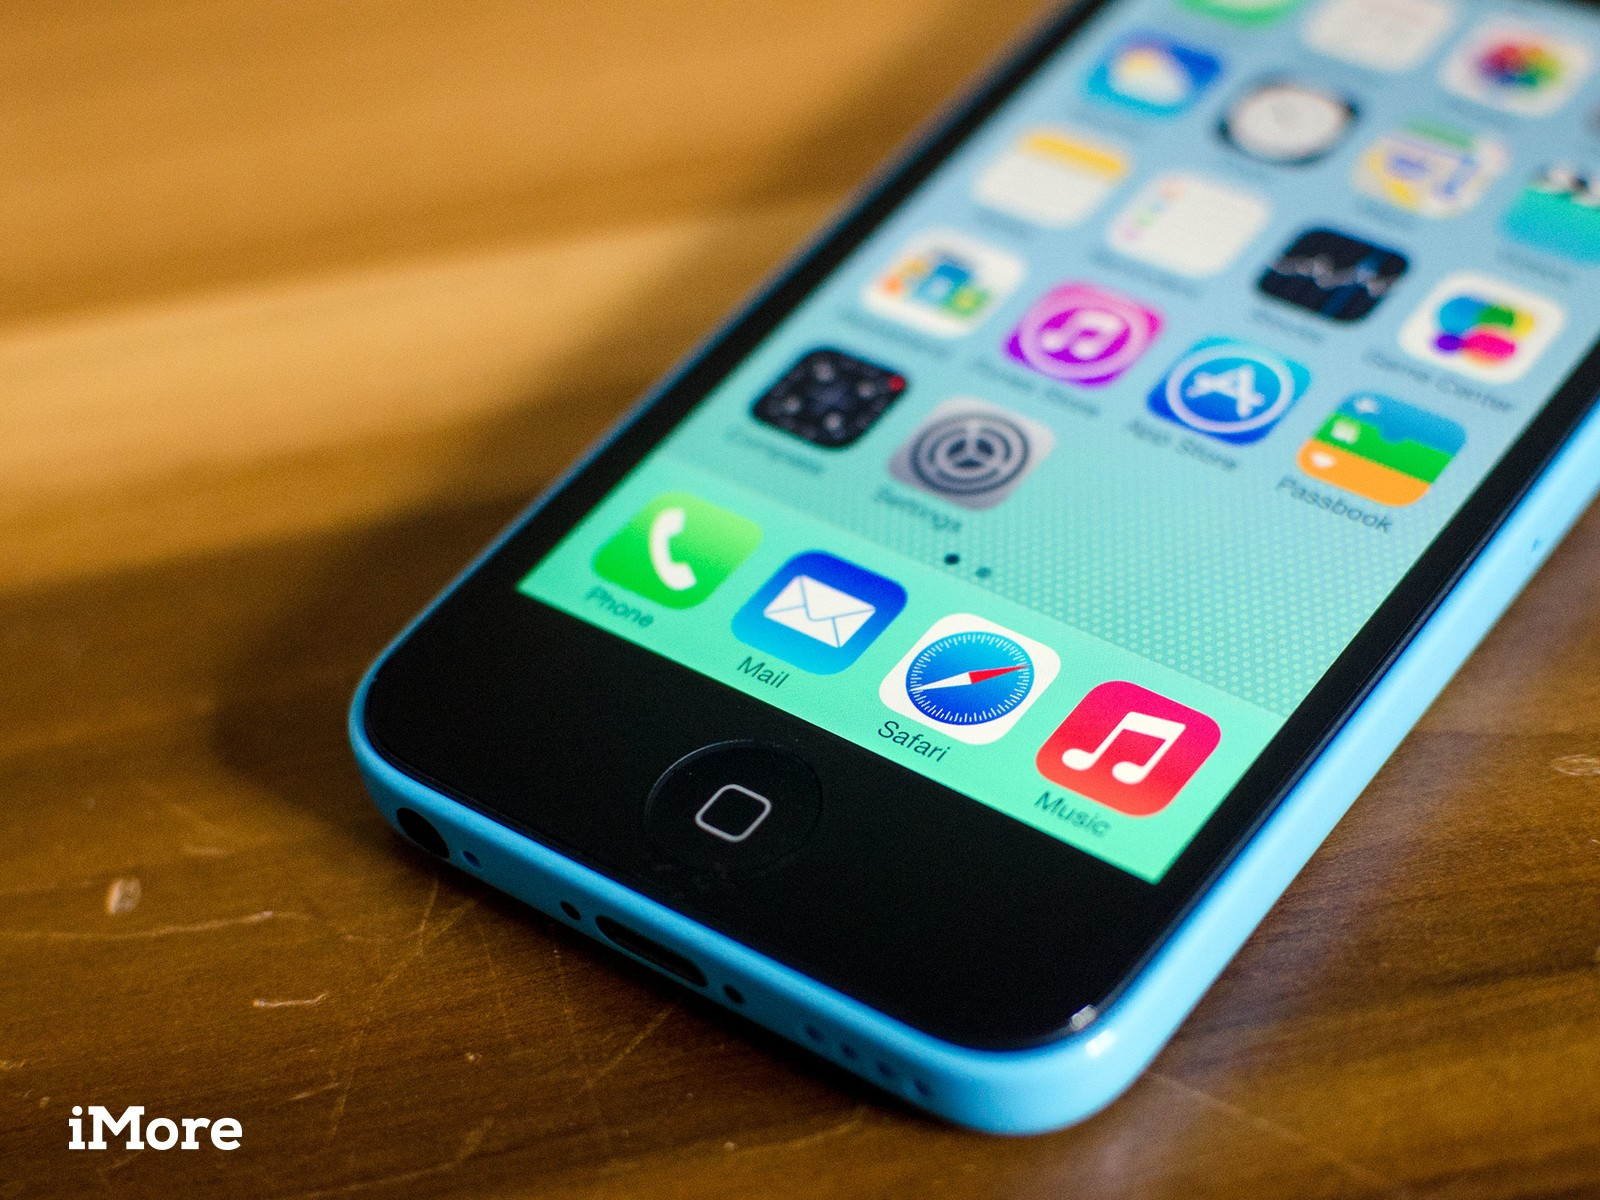 How to replace the Home button in an iPhone 5c